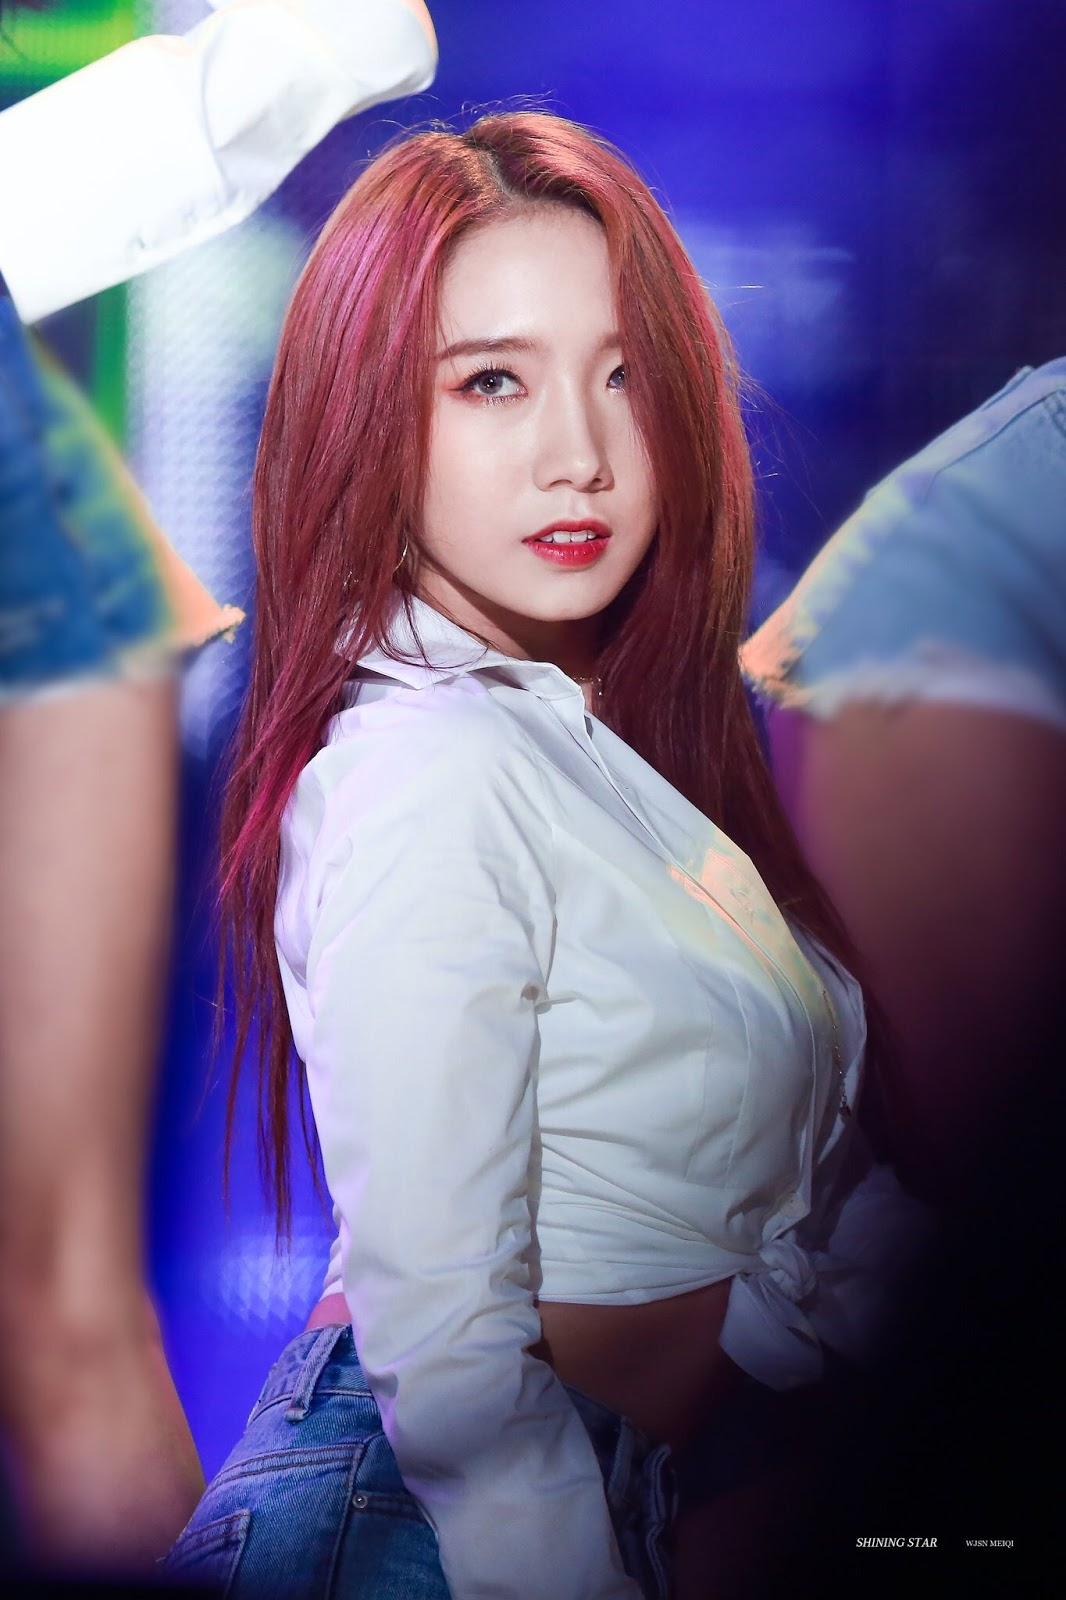 This Wjsn Member Looks Absolutely Hot With Red Hair